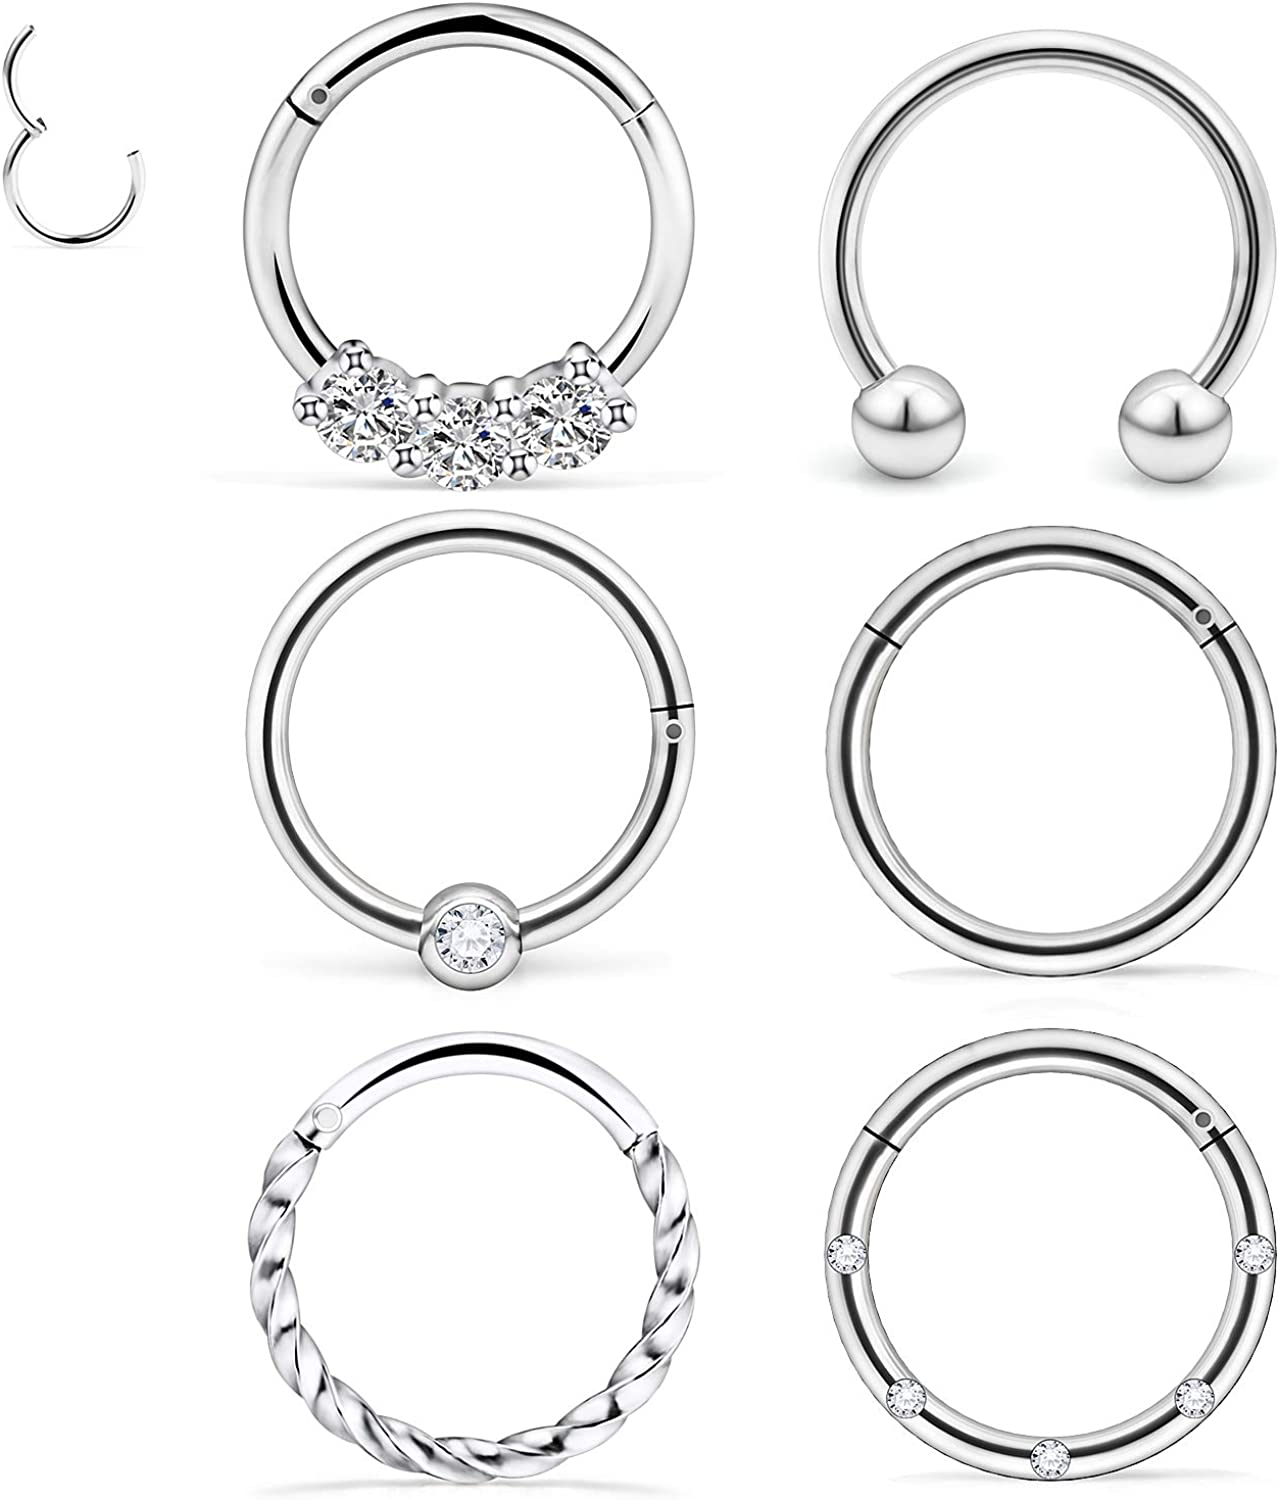 "Dyknasz Septum Jewelry 16G Surgical Steel Nose Rings Hoop Septum Clicker Ring with Clear Diamond CZ Cartilage Tragus Helix Earring Piercing Jewelry for Women Men 10mm (3/8"")"